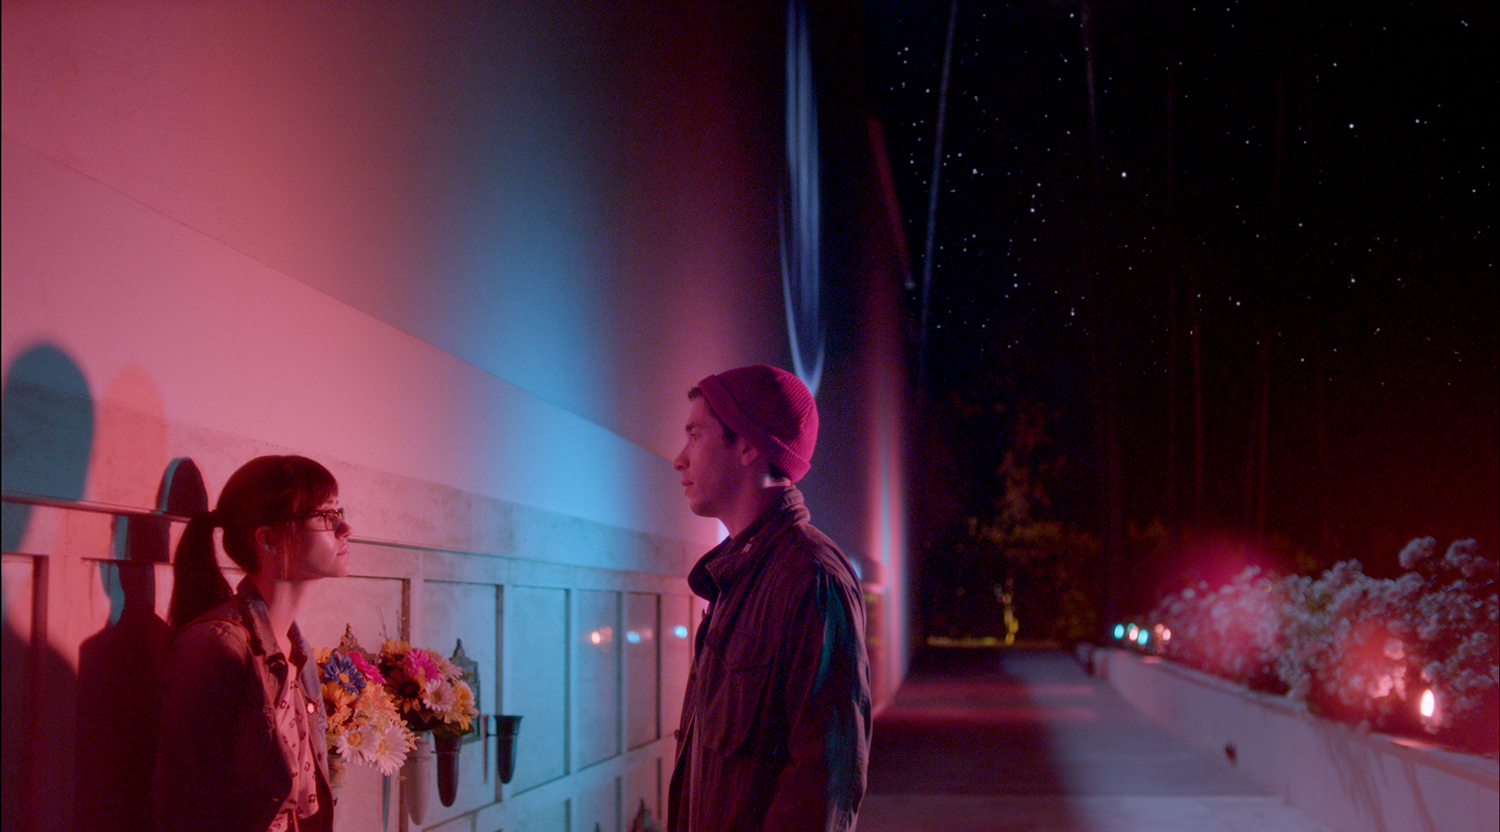 Justin Long and Emily Rossum star in director Sam Esmail's feature debut  Comet